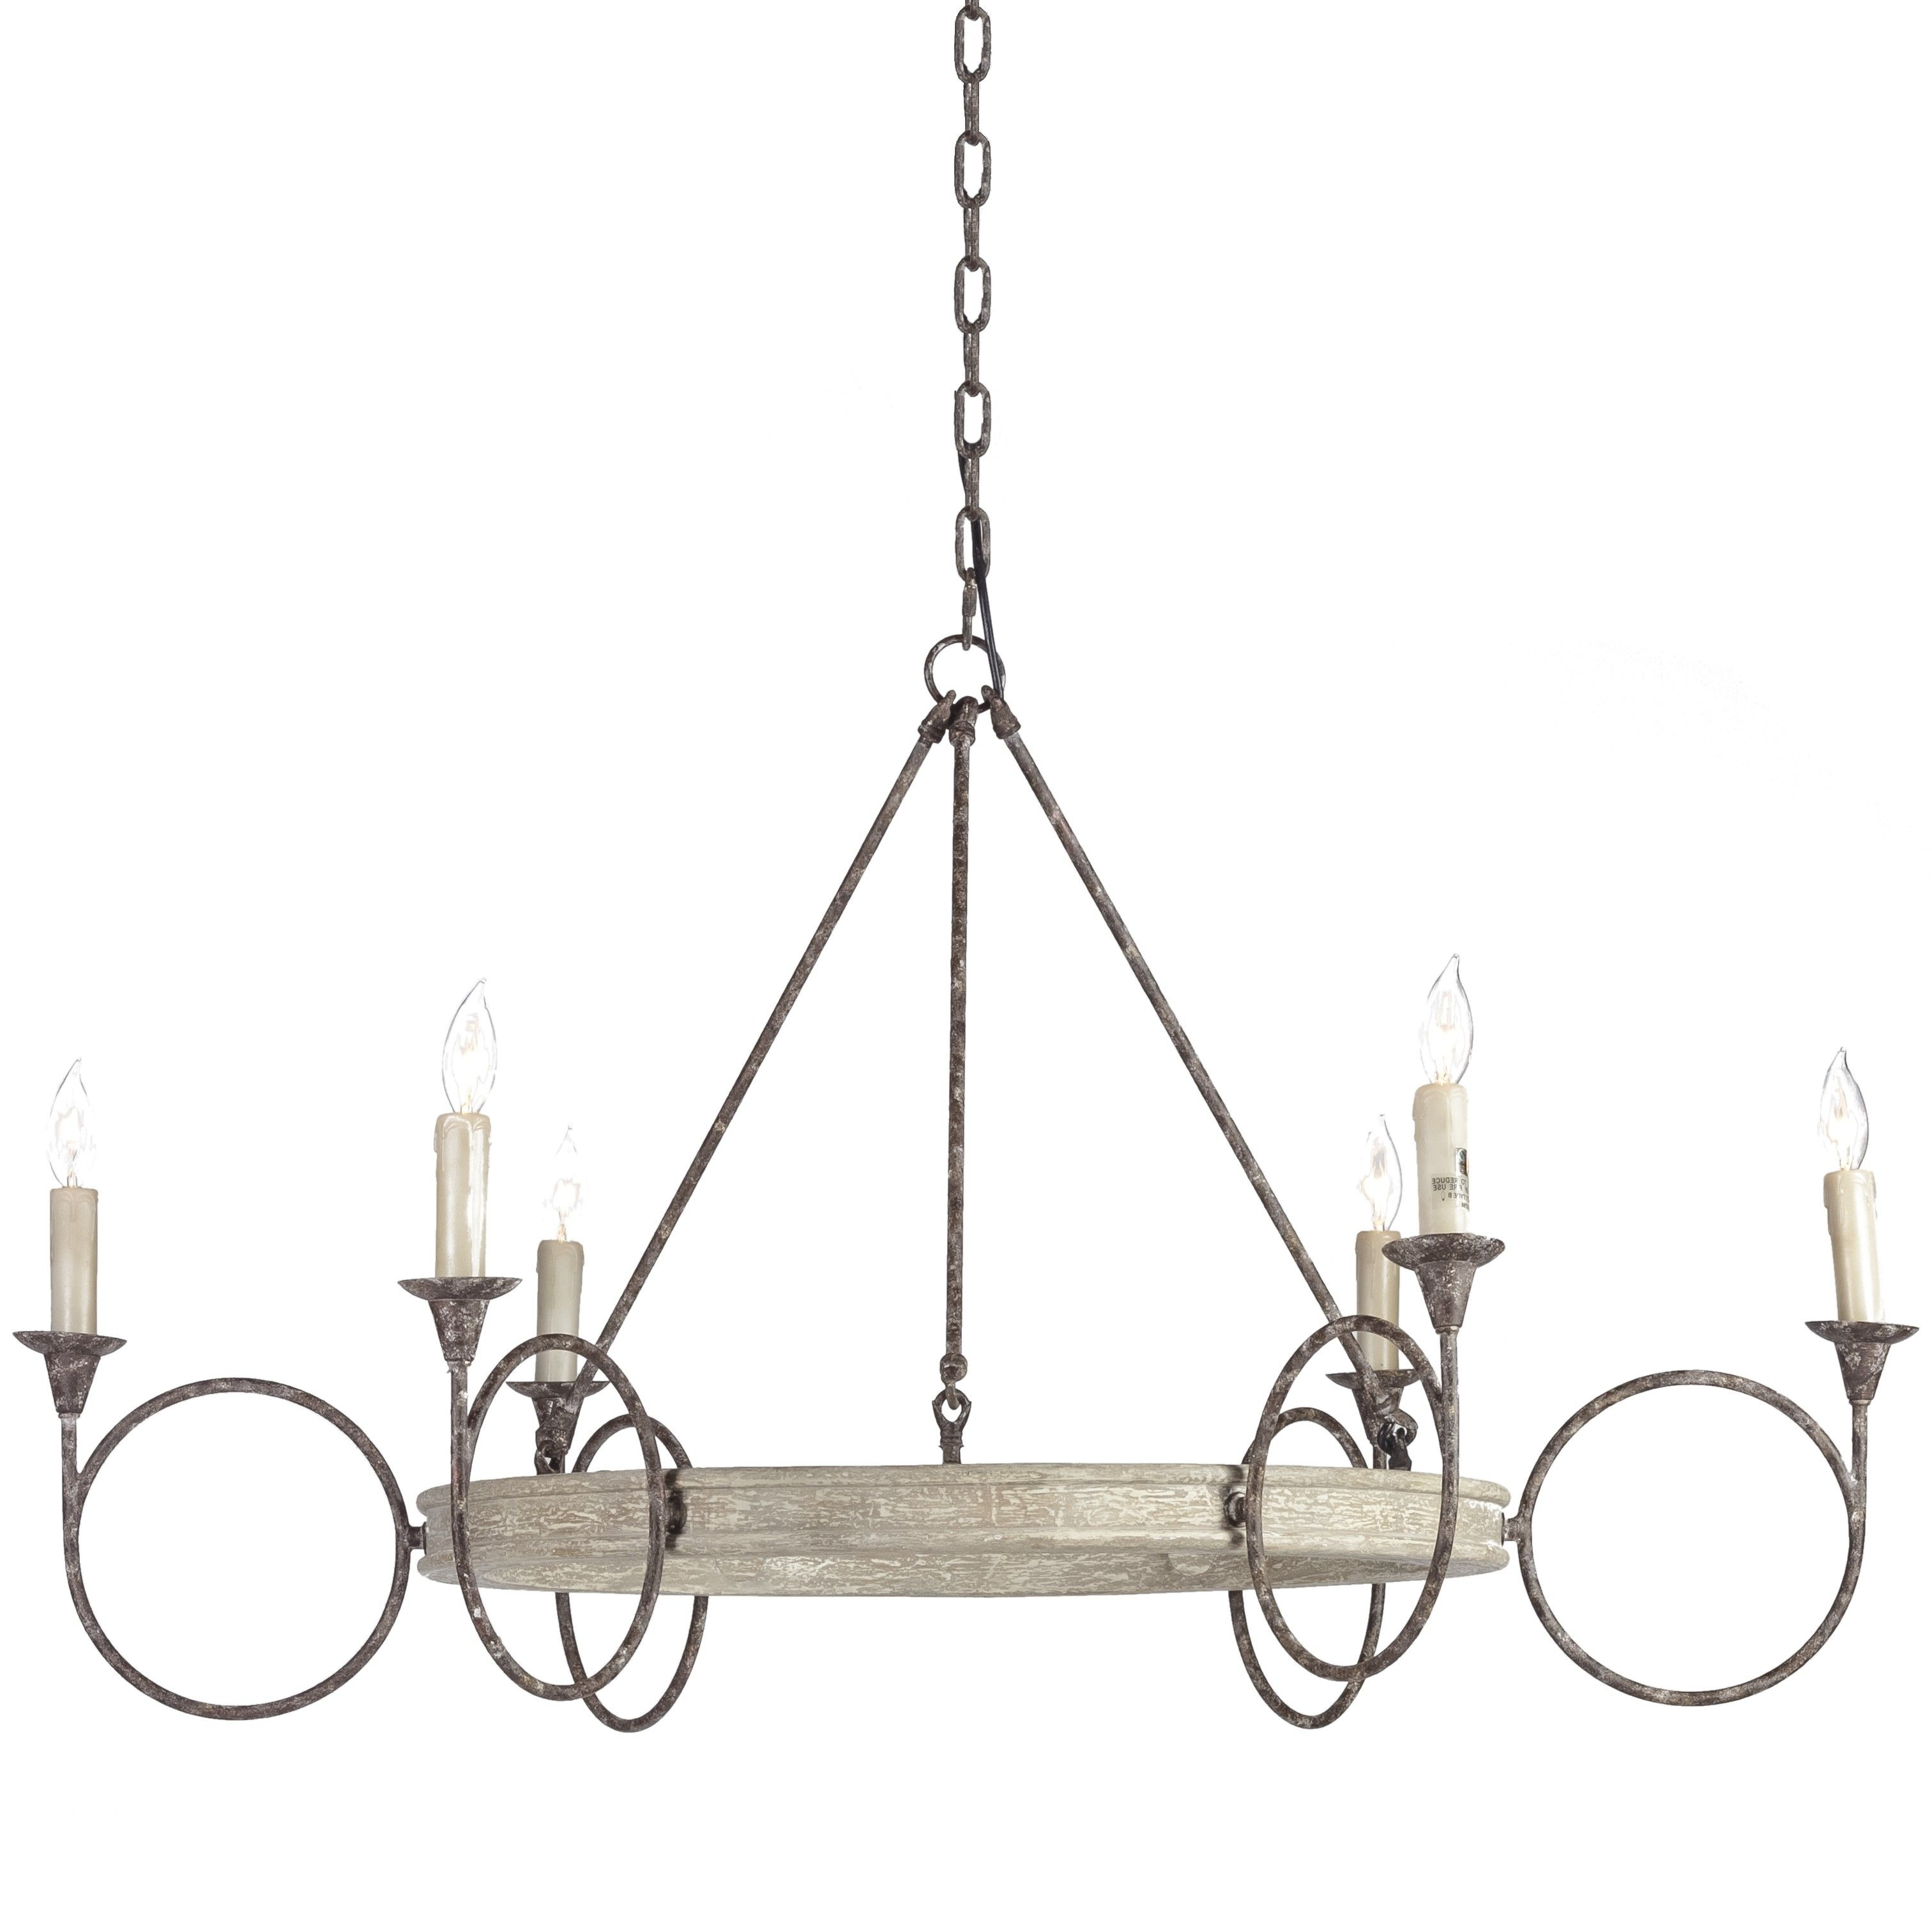 Most Recent Gabby Chandelier Inside This Large Circle Candle Chandelier Offers A Transitional Silhouette (View 9 of 20)